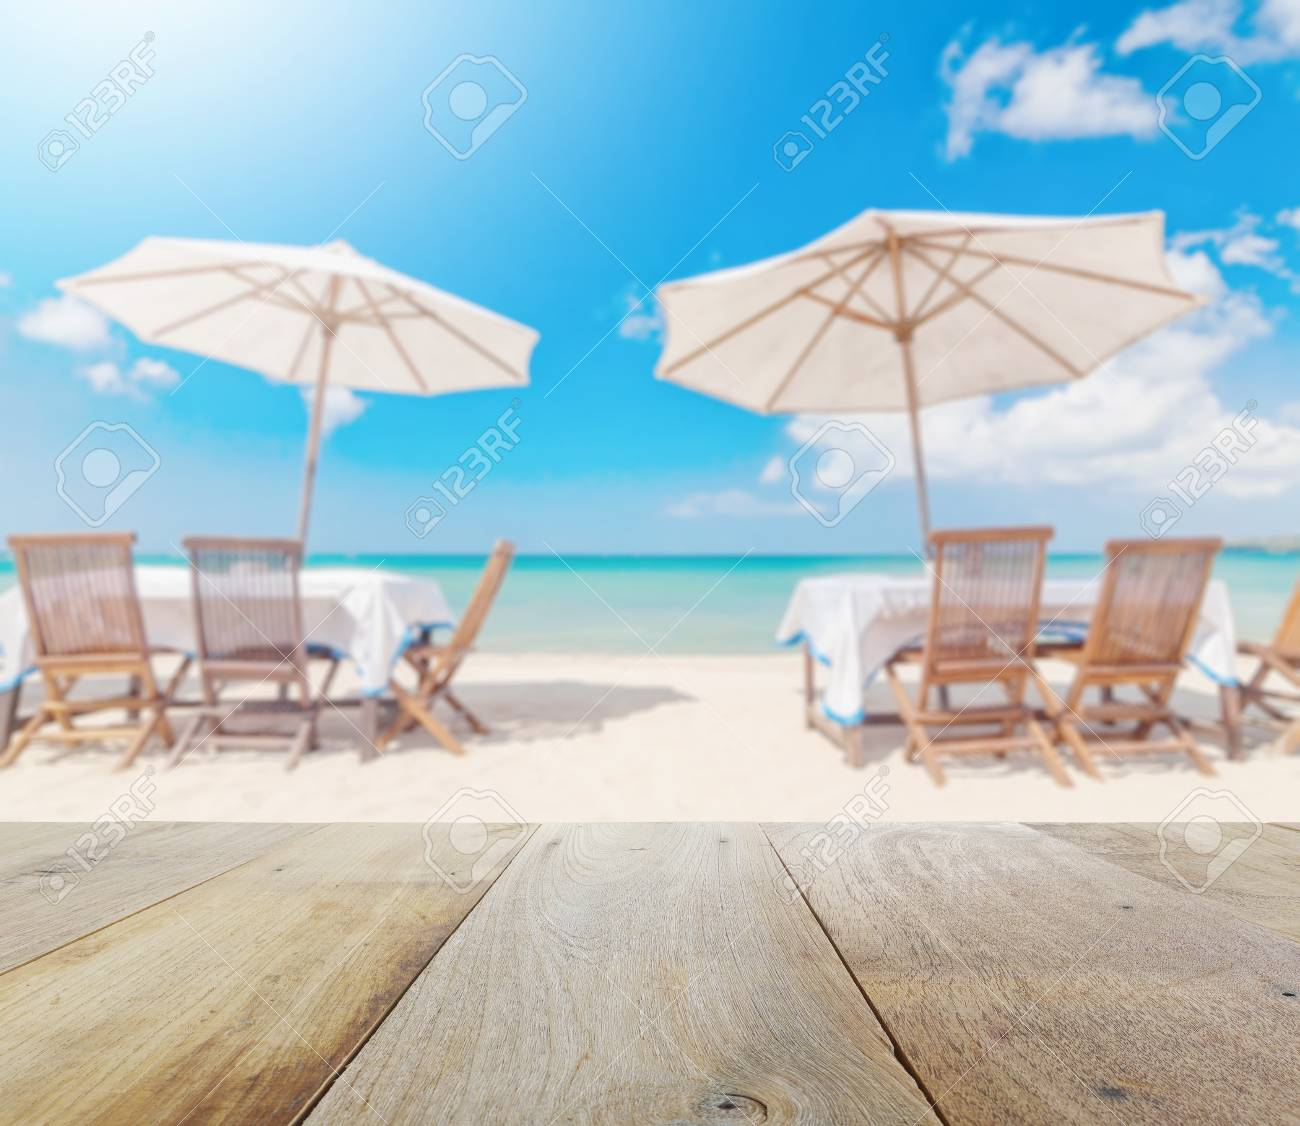 Stock Photo   Wooden Table Top With Blur Of Table Set And Umbrella On The  Beach